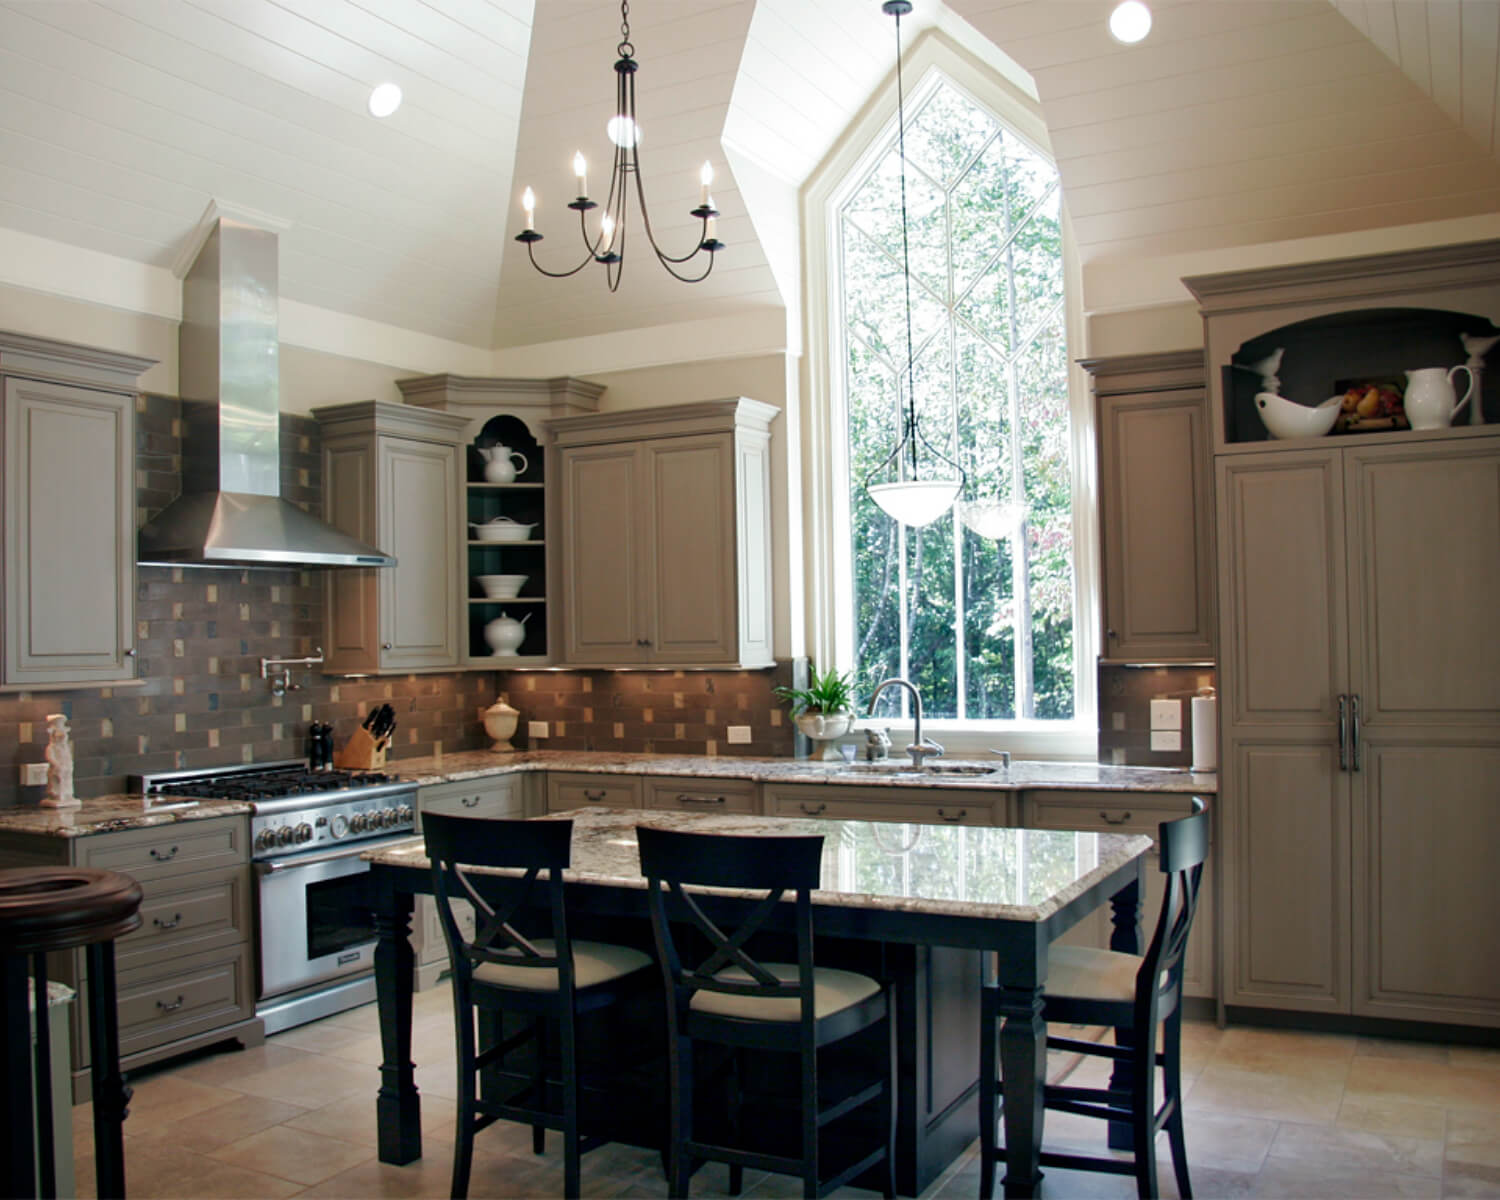 It's Your Forever Home - Create Custom Cabinetry Inspired By You